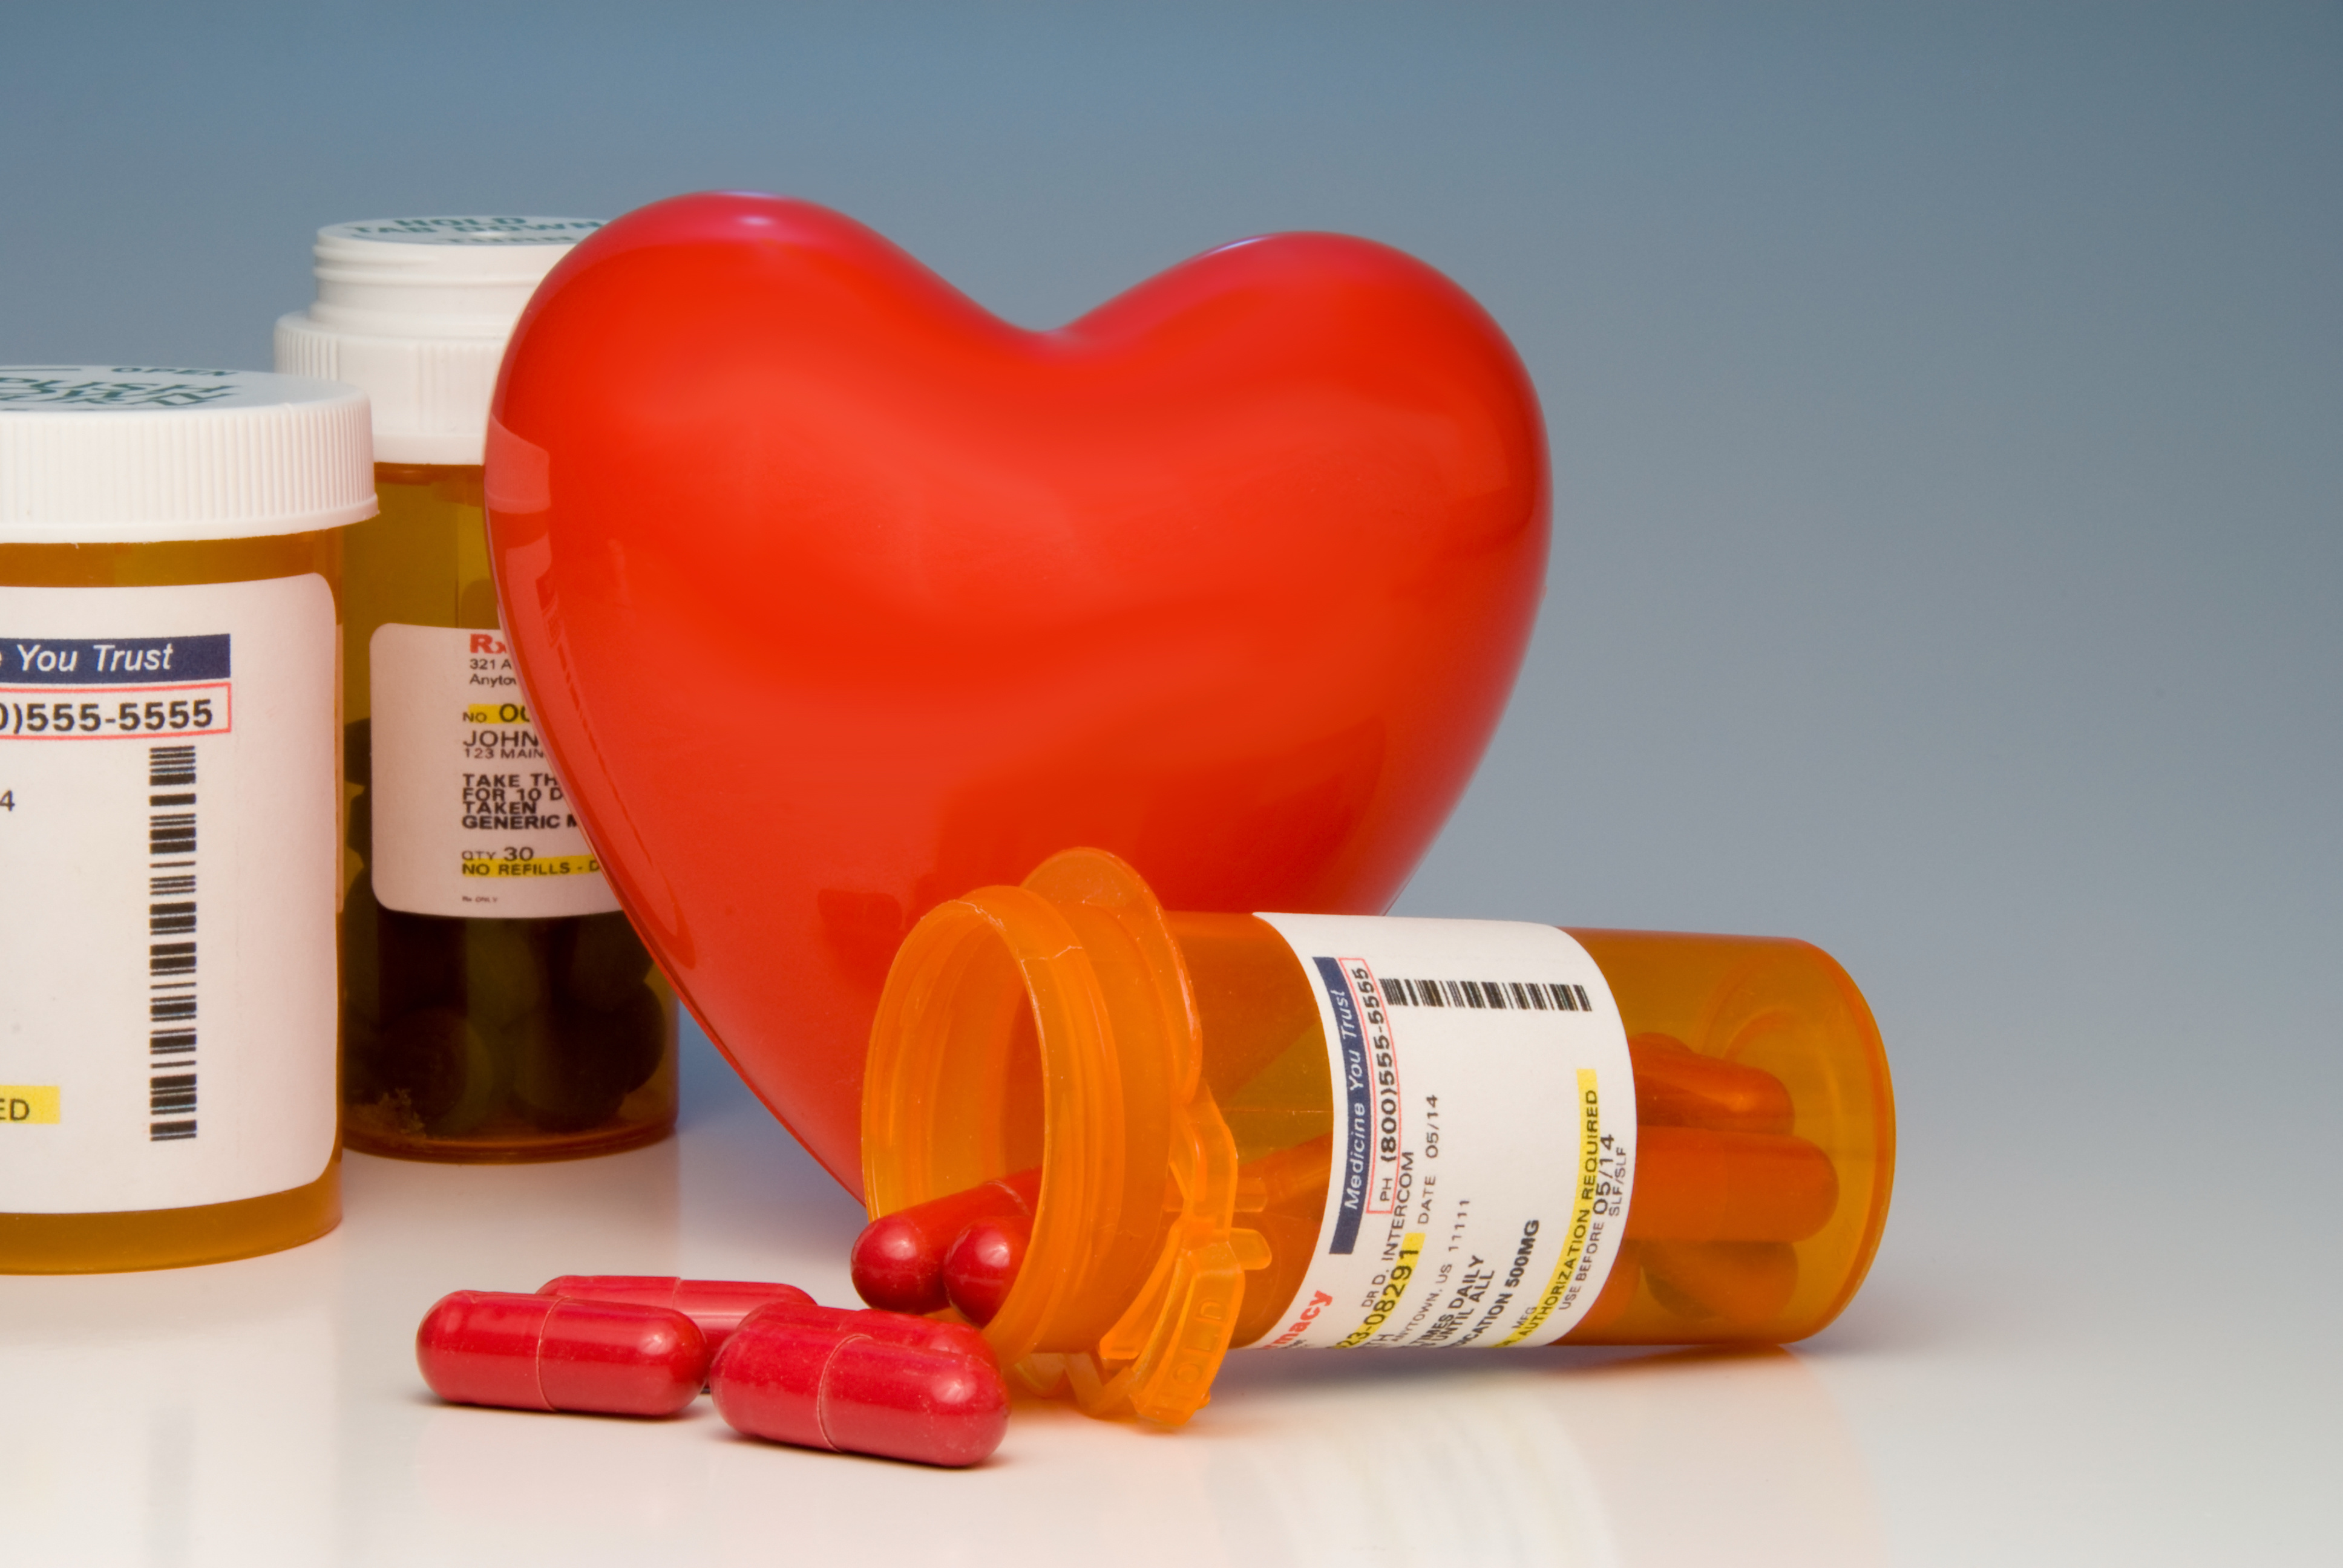 Beta Blockers Not Needed After Heart Attack if Other